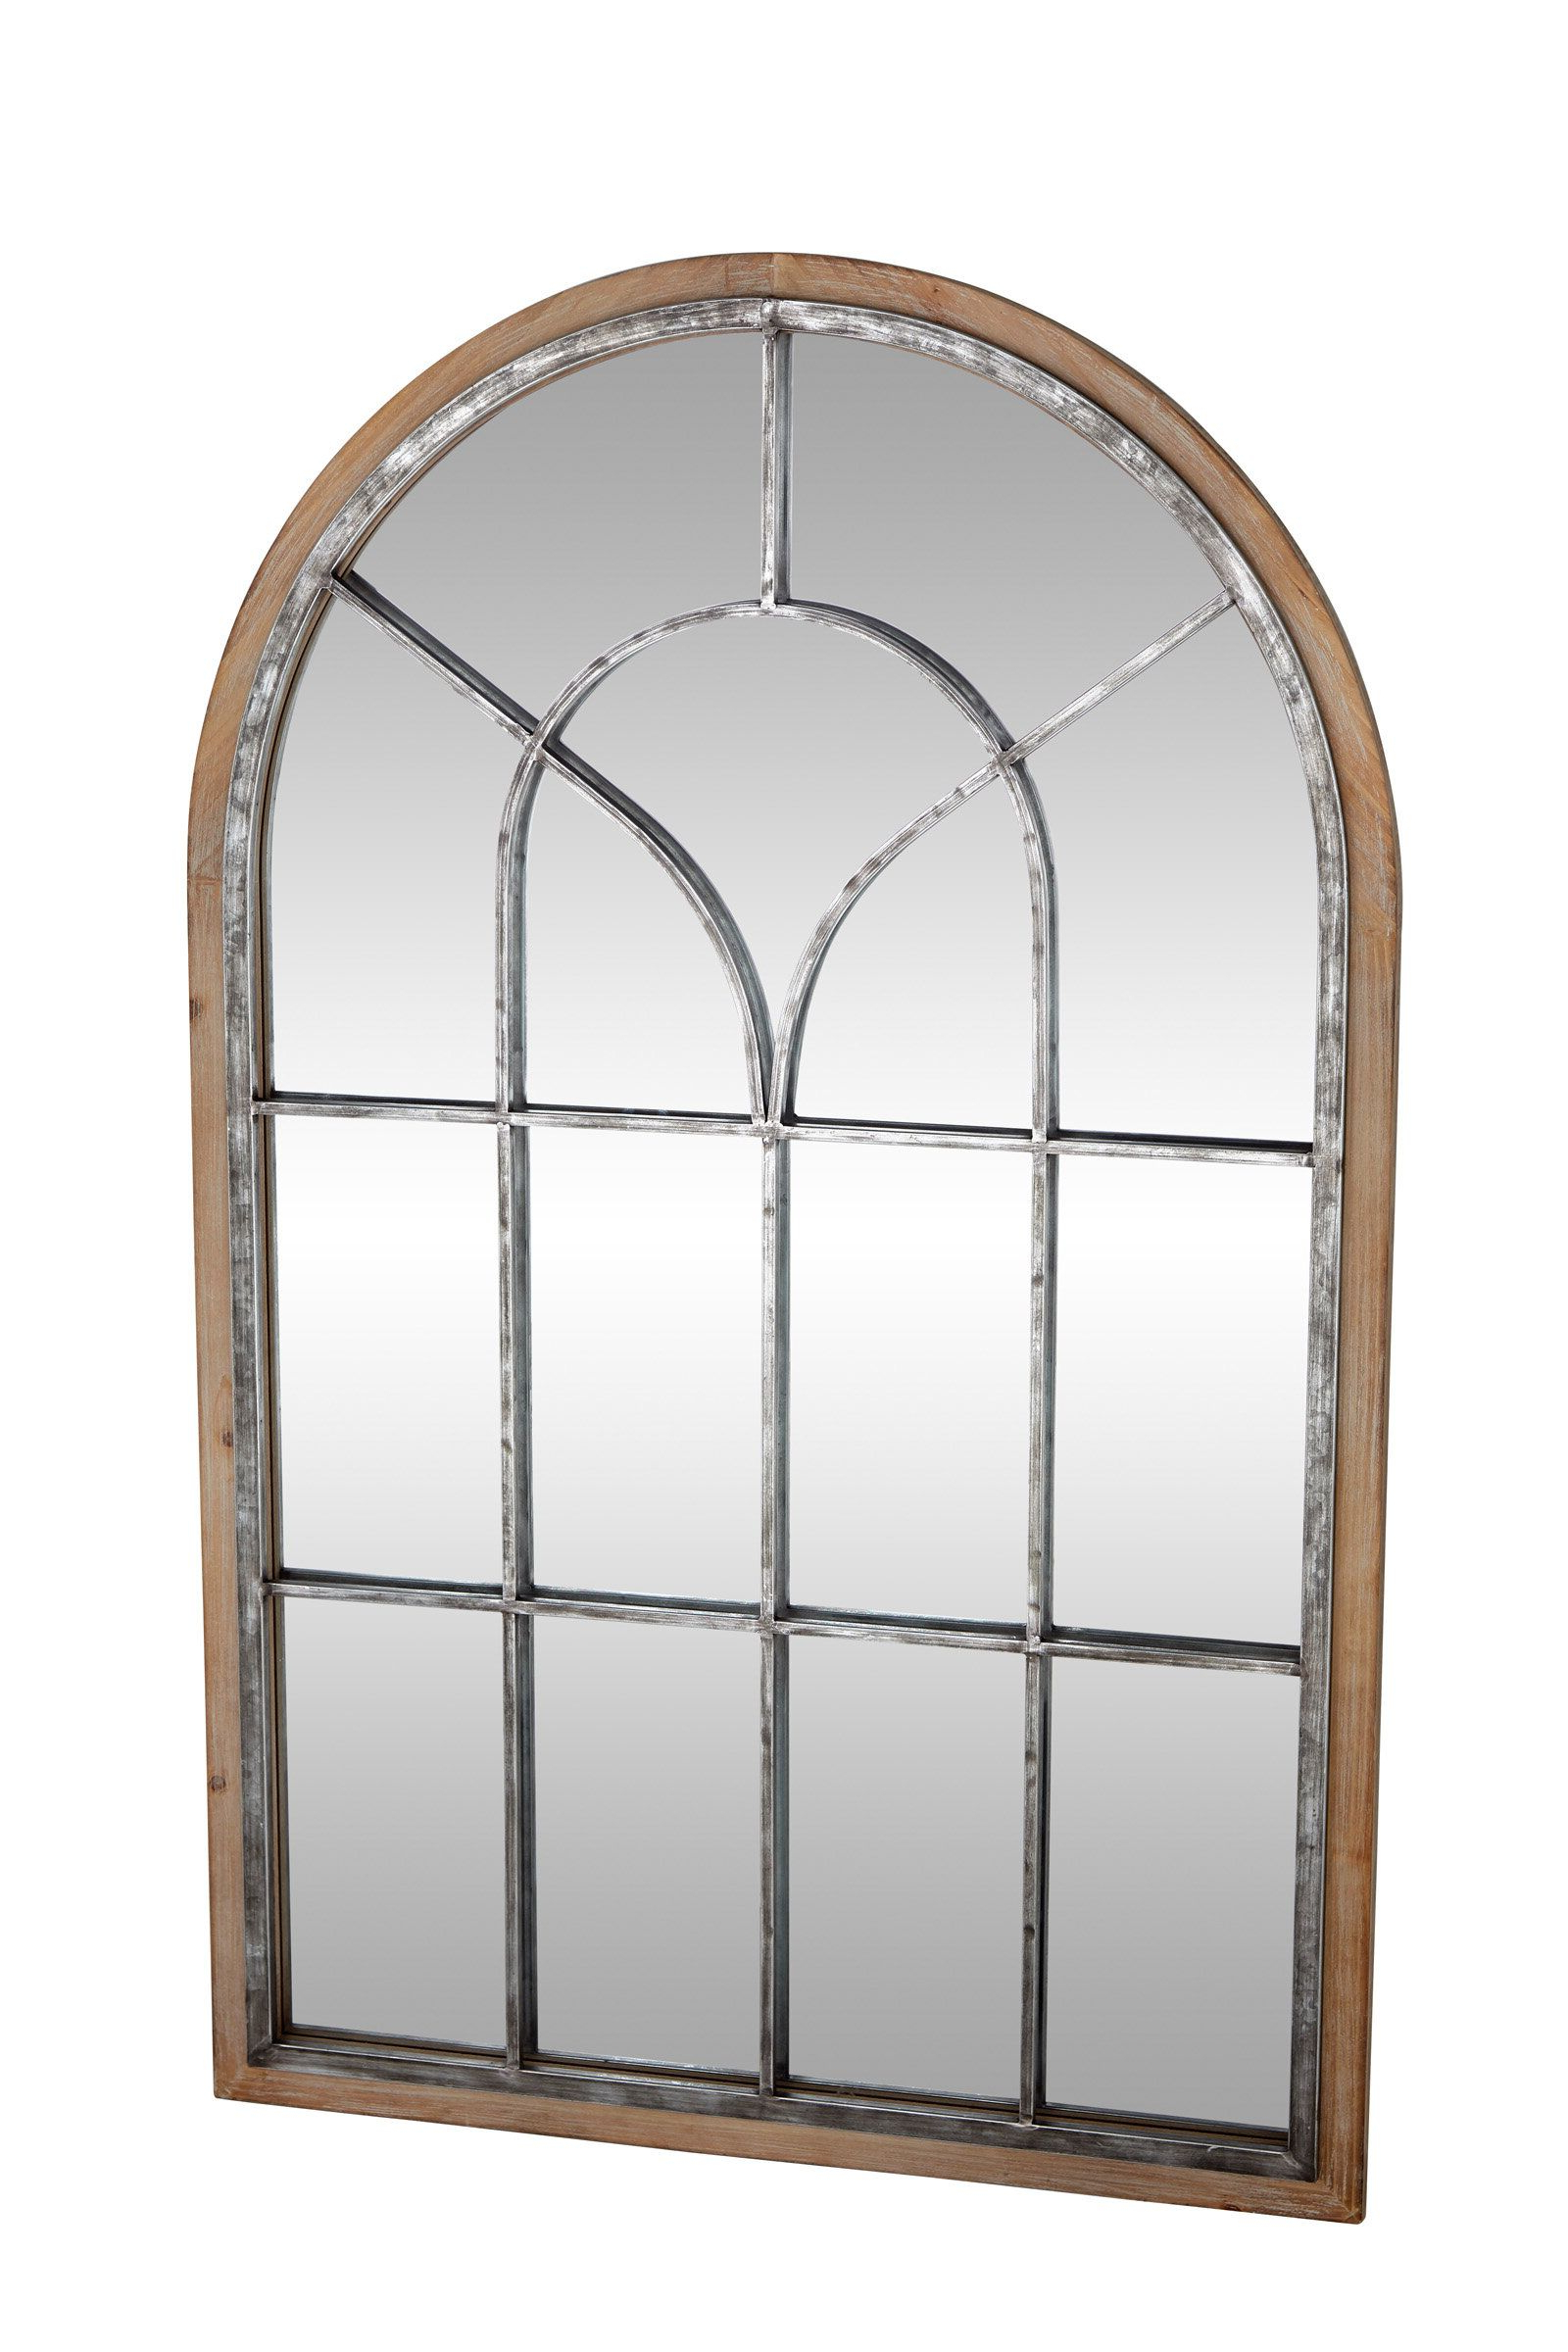 Kelly Clarkson Home Alison Arched Distressed Accent Mirror With Regard To Newest Arch Wall Décor By One Allium Way (View 13 of 20)